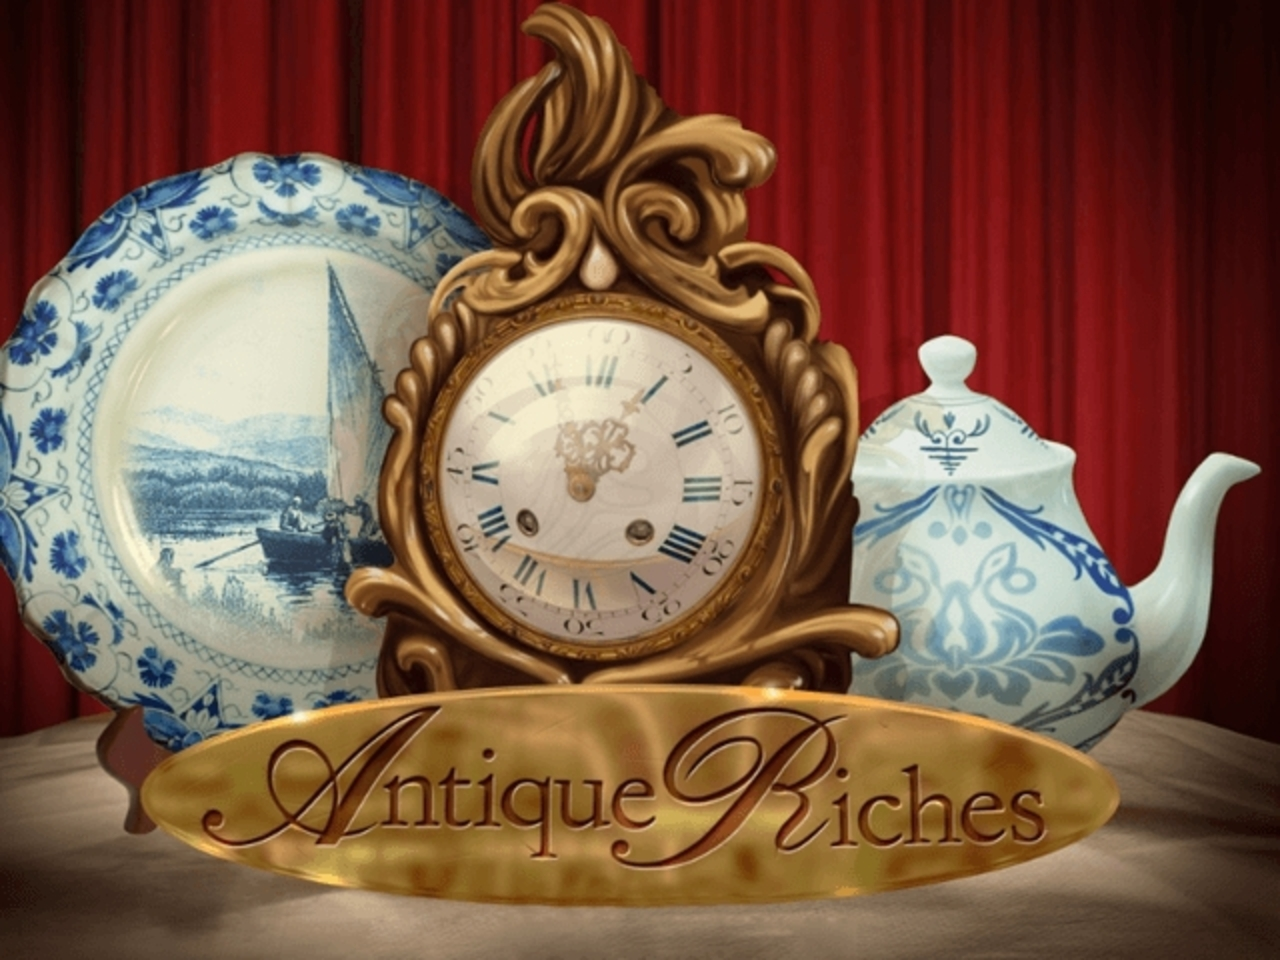 Se Antique Riches Online Slot Demo Game, Genesis